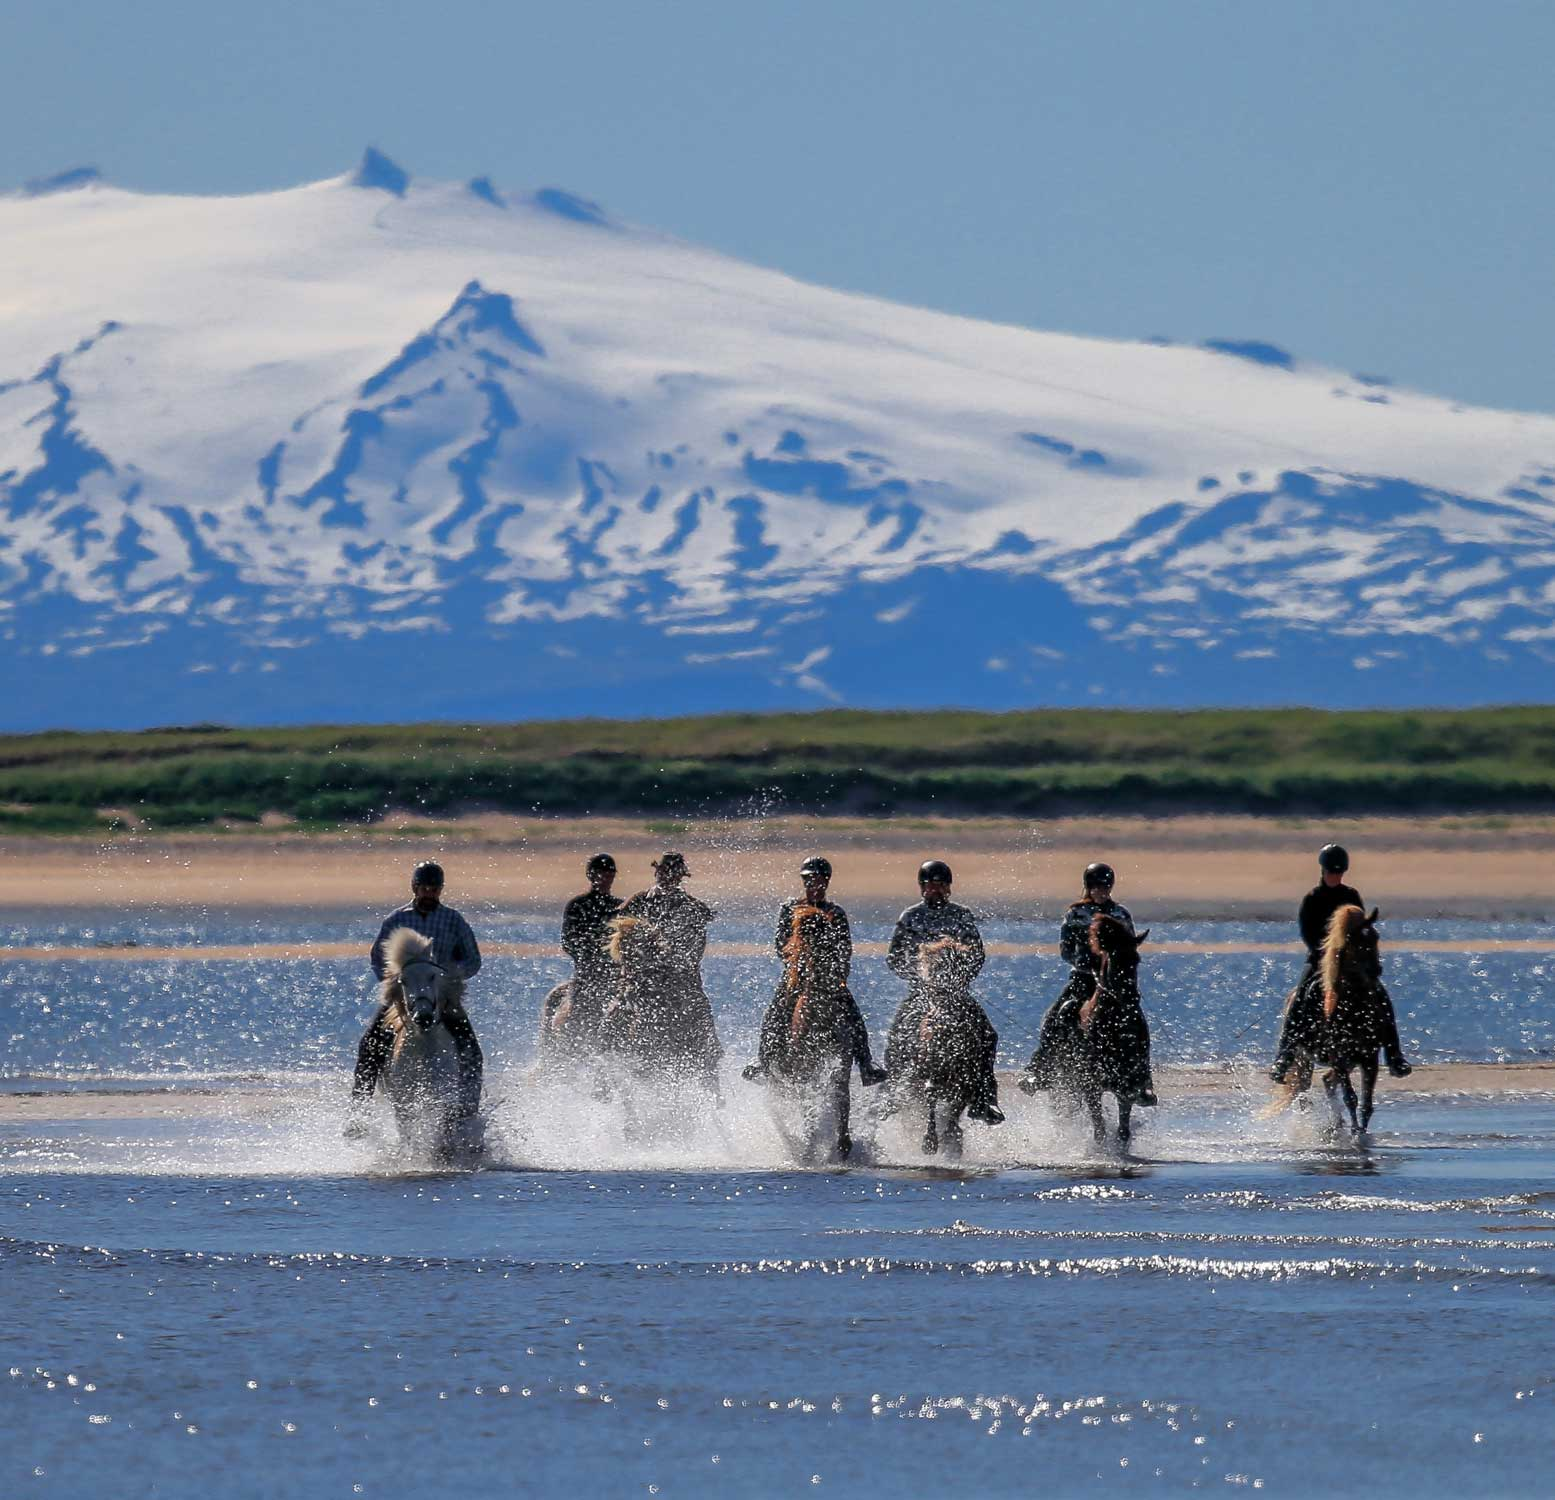 Horseback riding in Iceland https://guidetoiceland.is/book-trips-holiday/adventure-tours/horse-riding